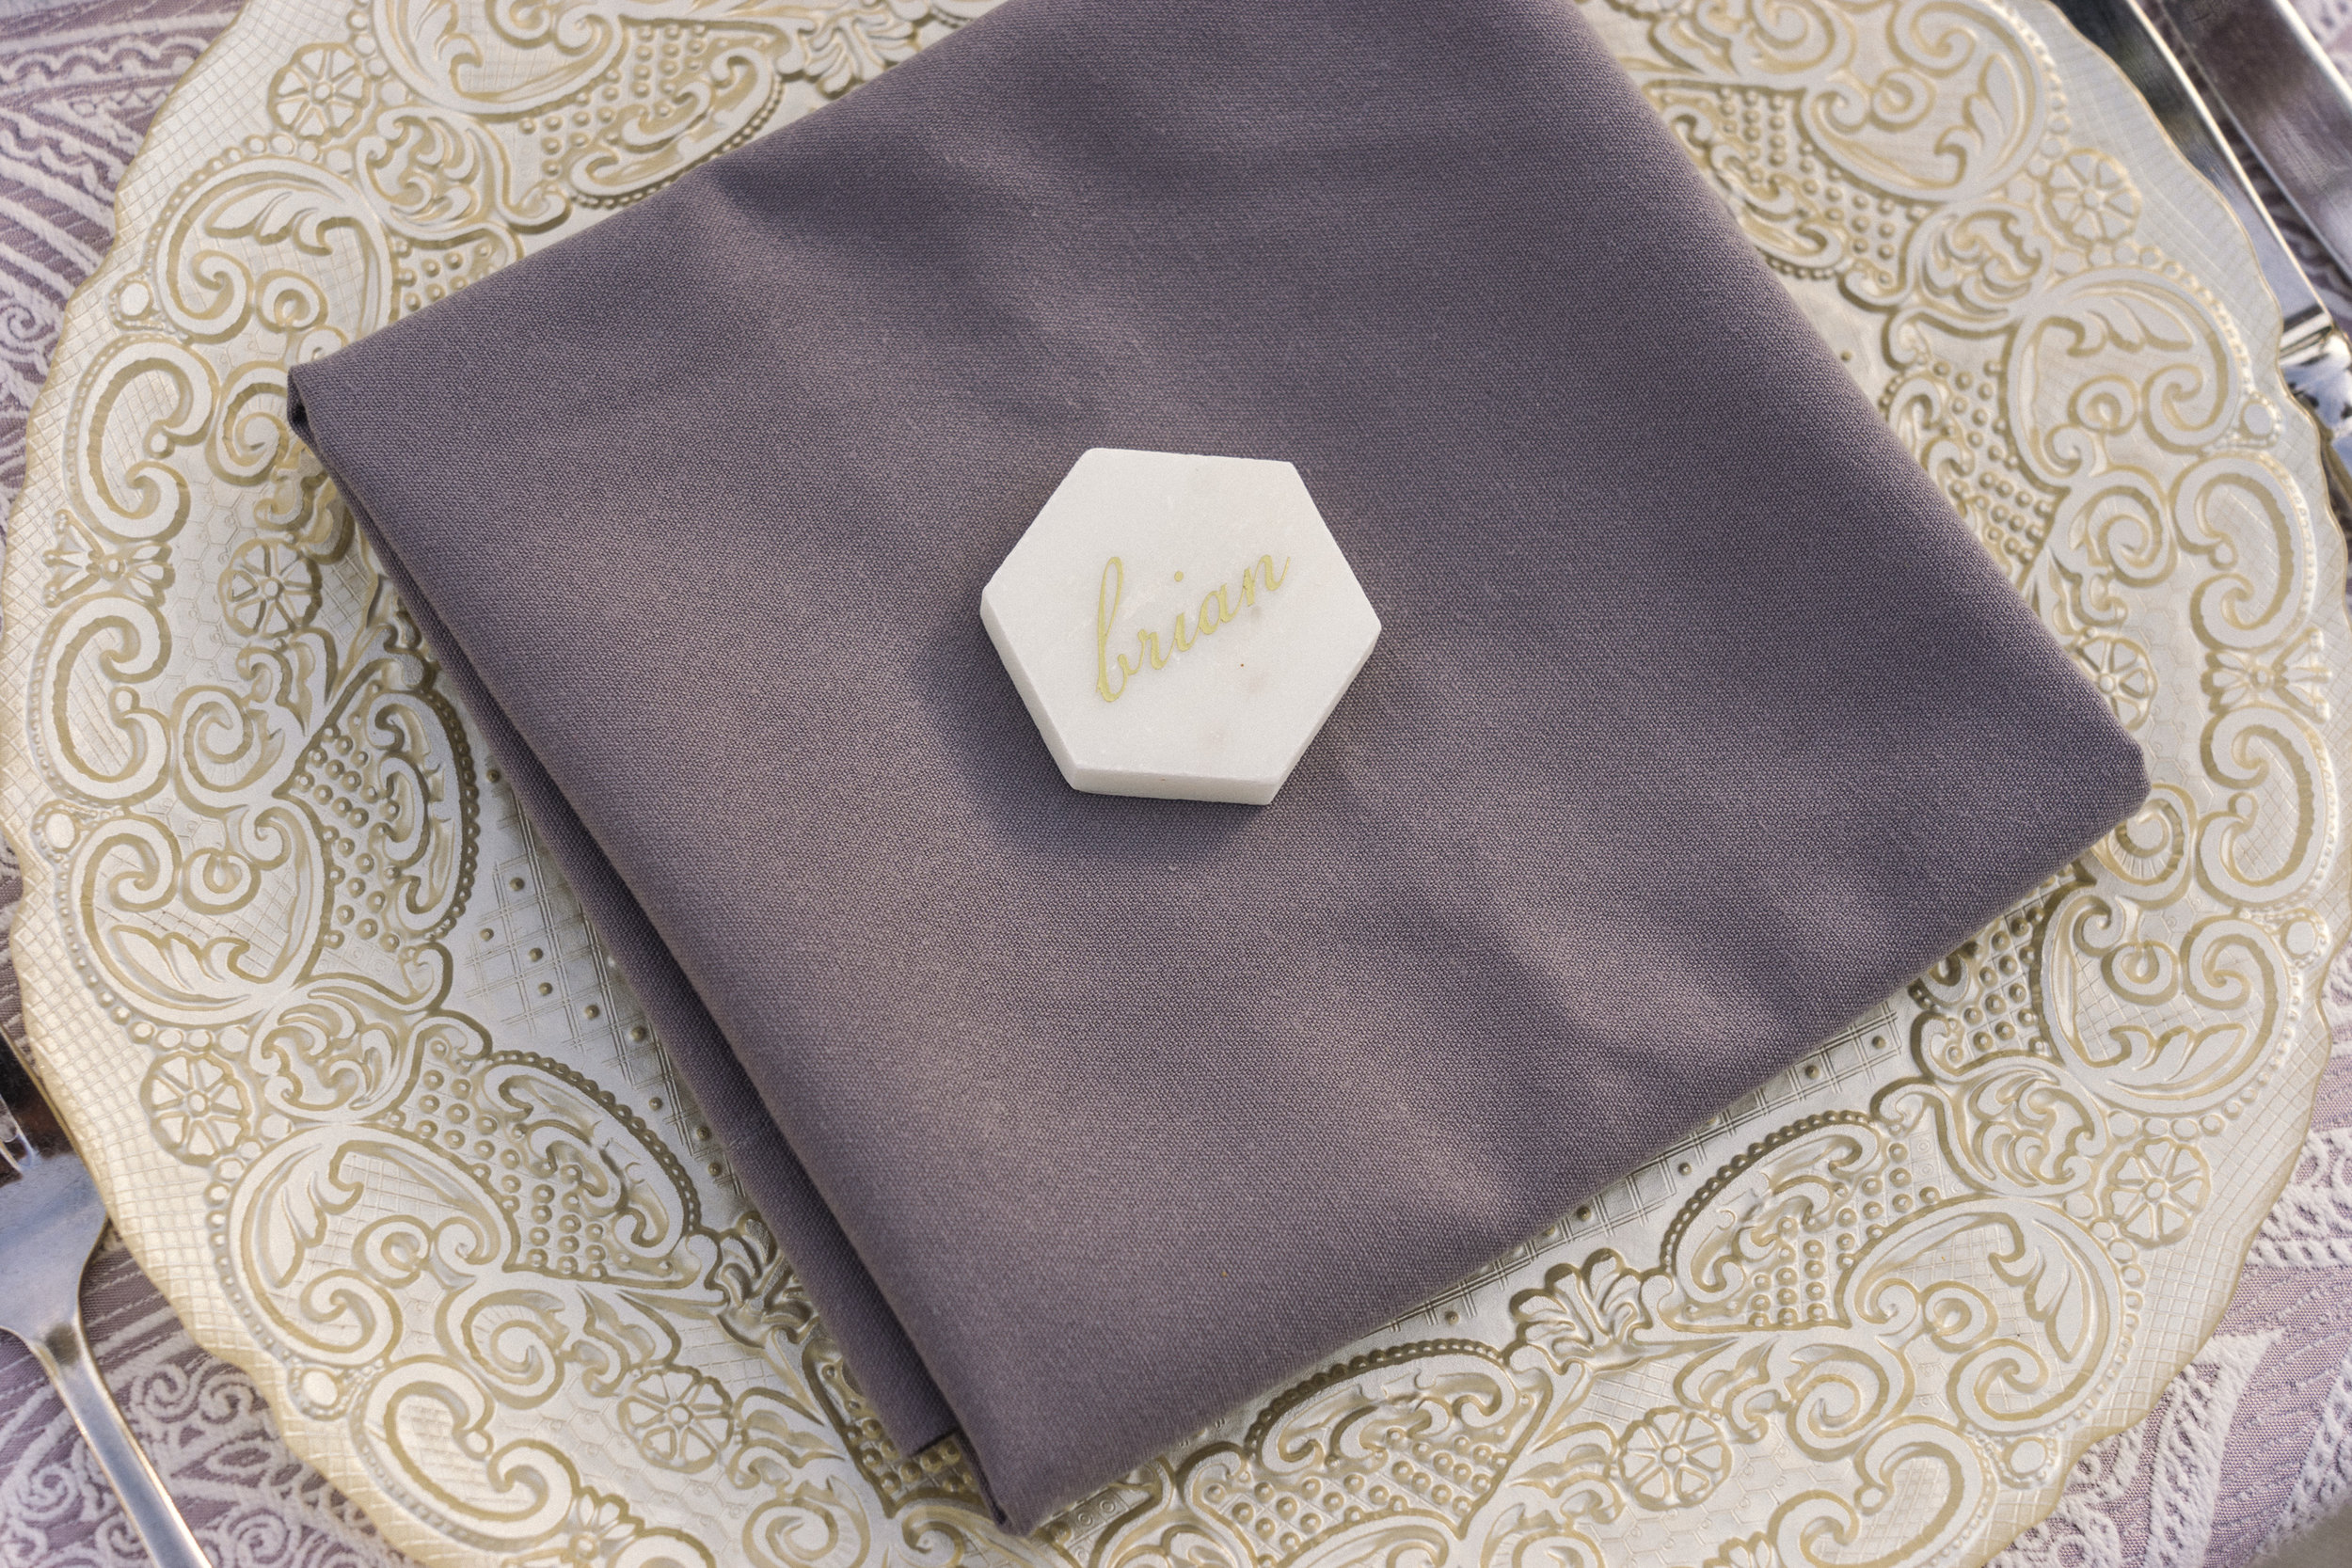 10 gold charger purple linen napkin tile placecard dinner table assigned seats Life Design Events photos by Keith and Melissa Photography.jpg